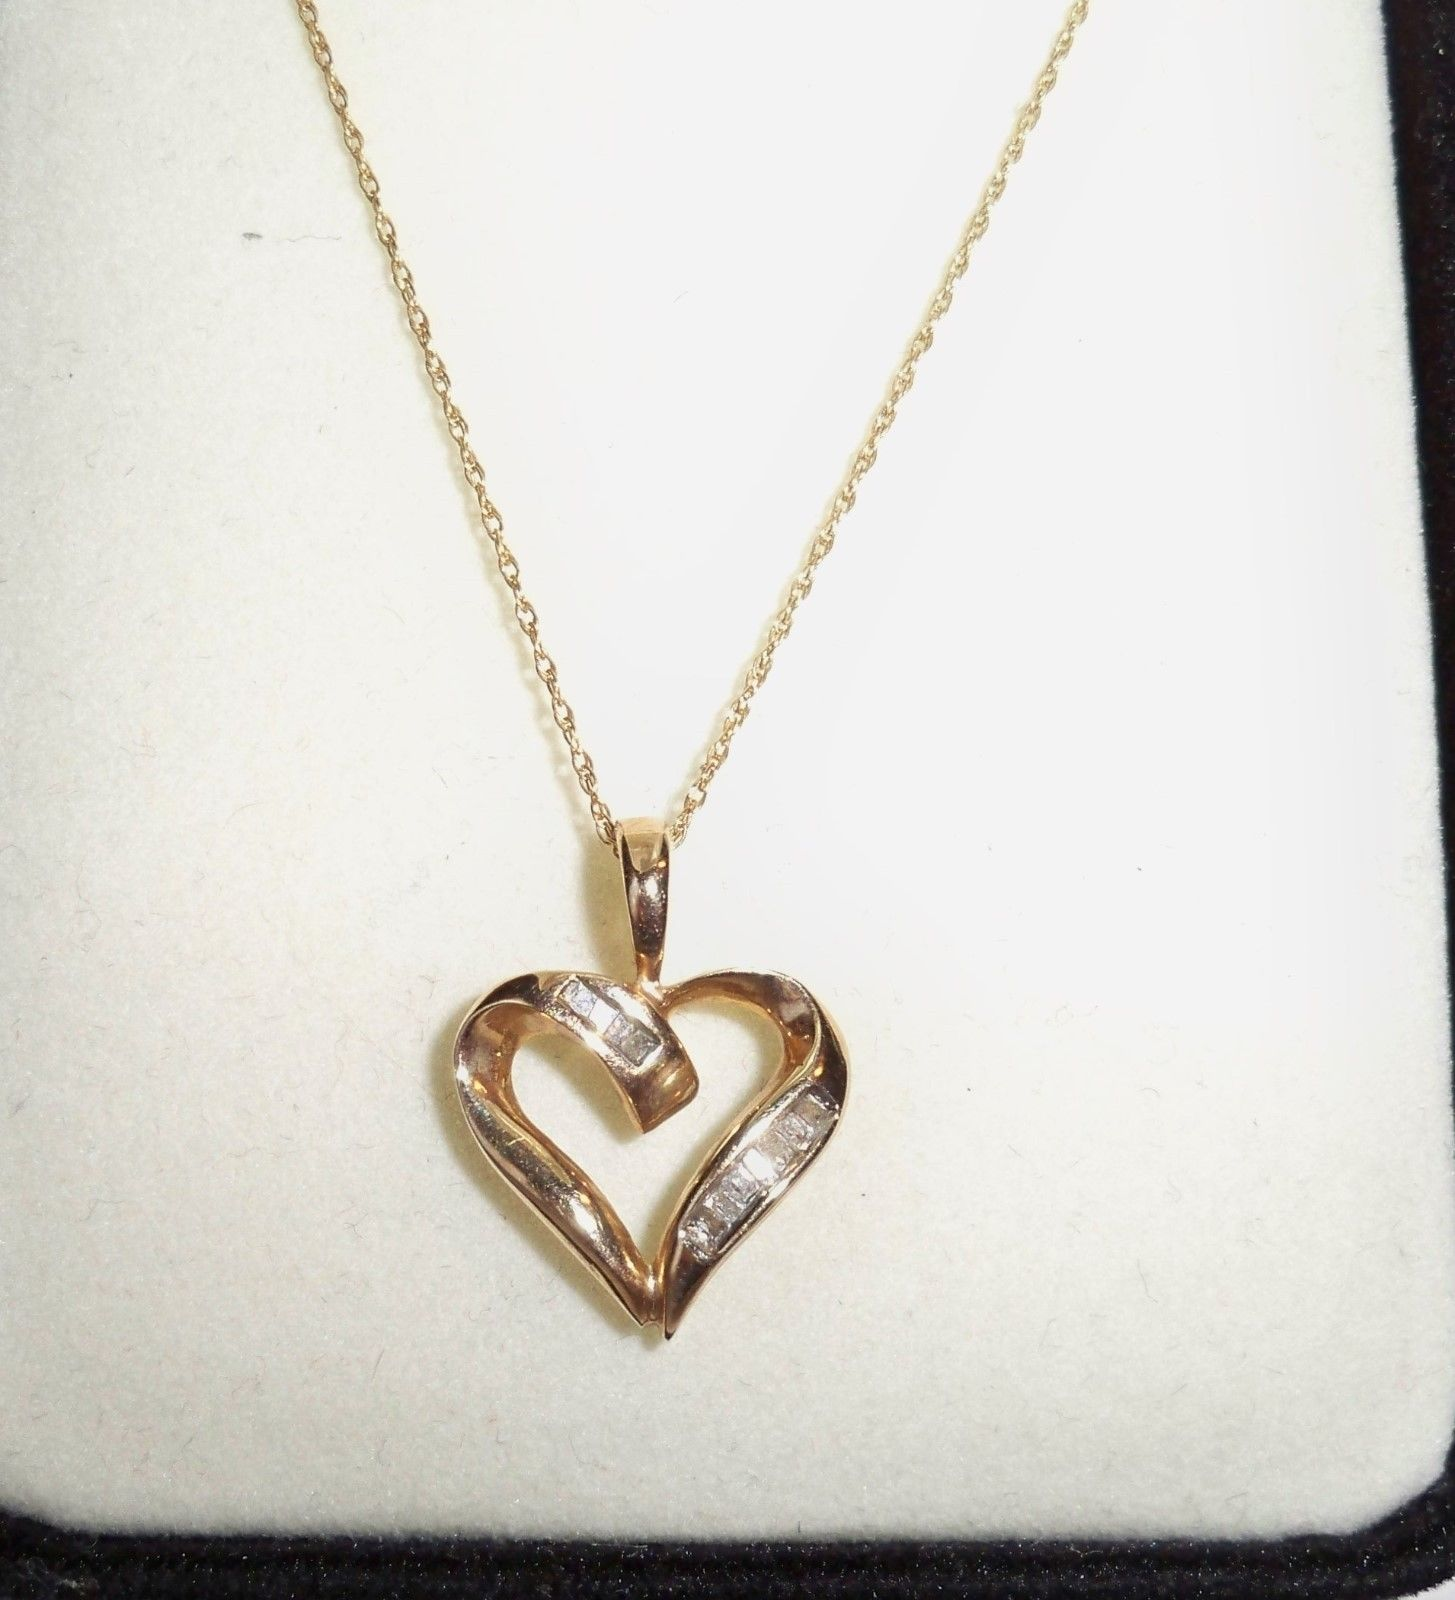 Vintage Solid 10k Gold Diamond Heart Pendant With 10k Gold Necklace Jewelry Cadenitas De Oro Oro Rojo Cadenas